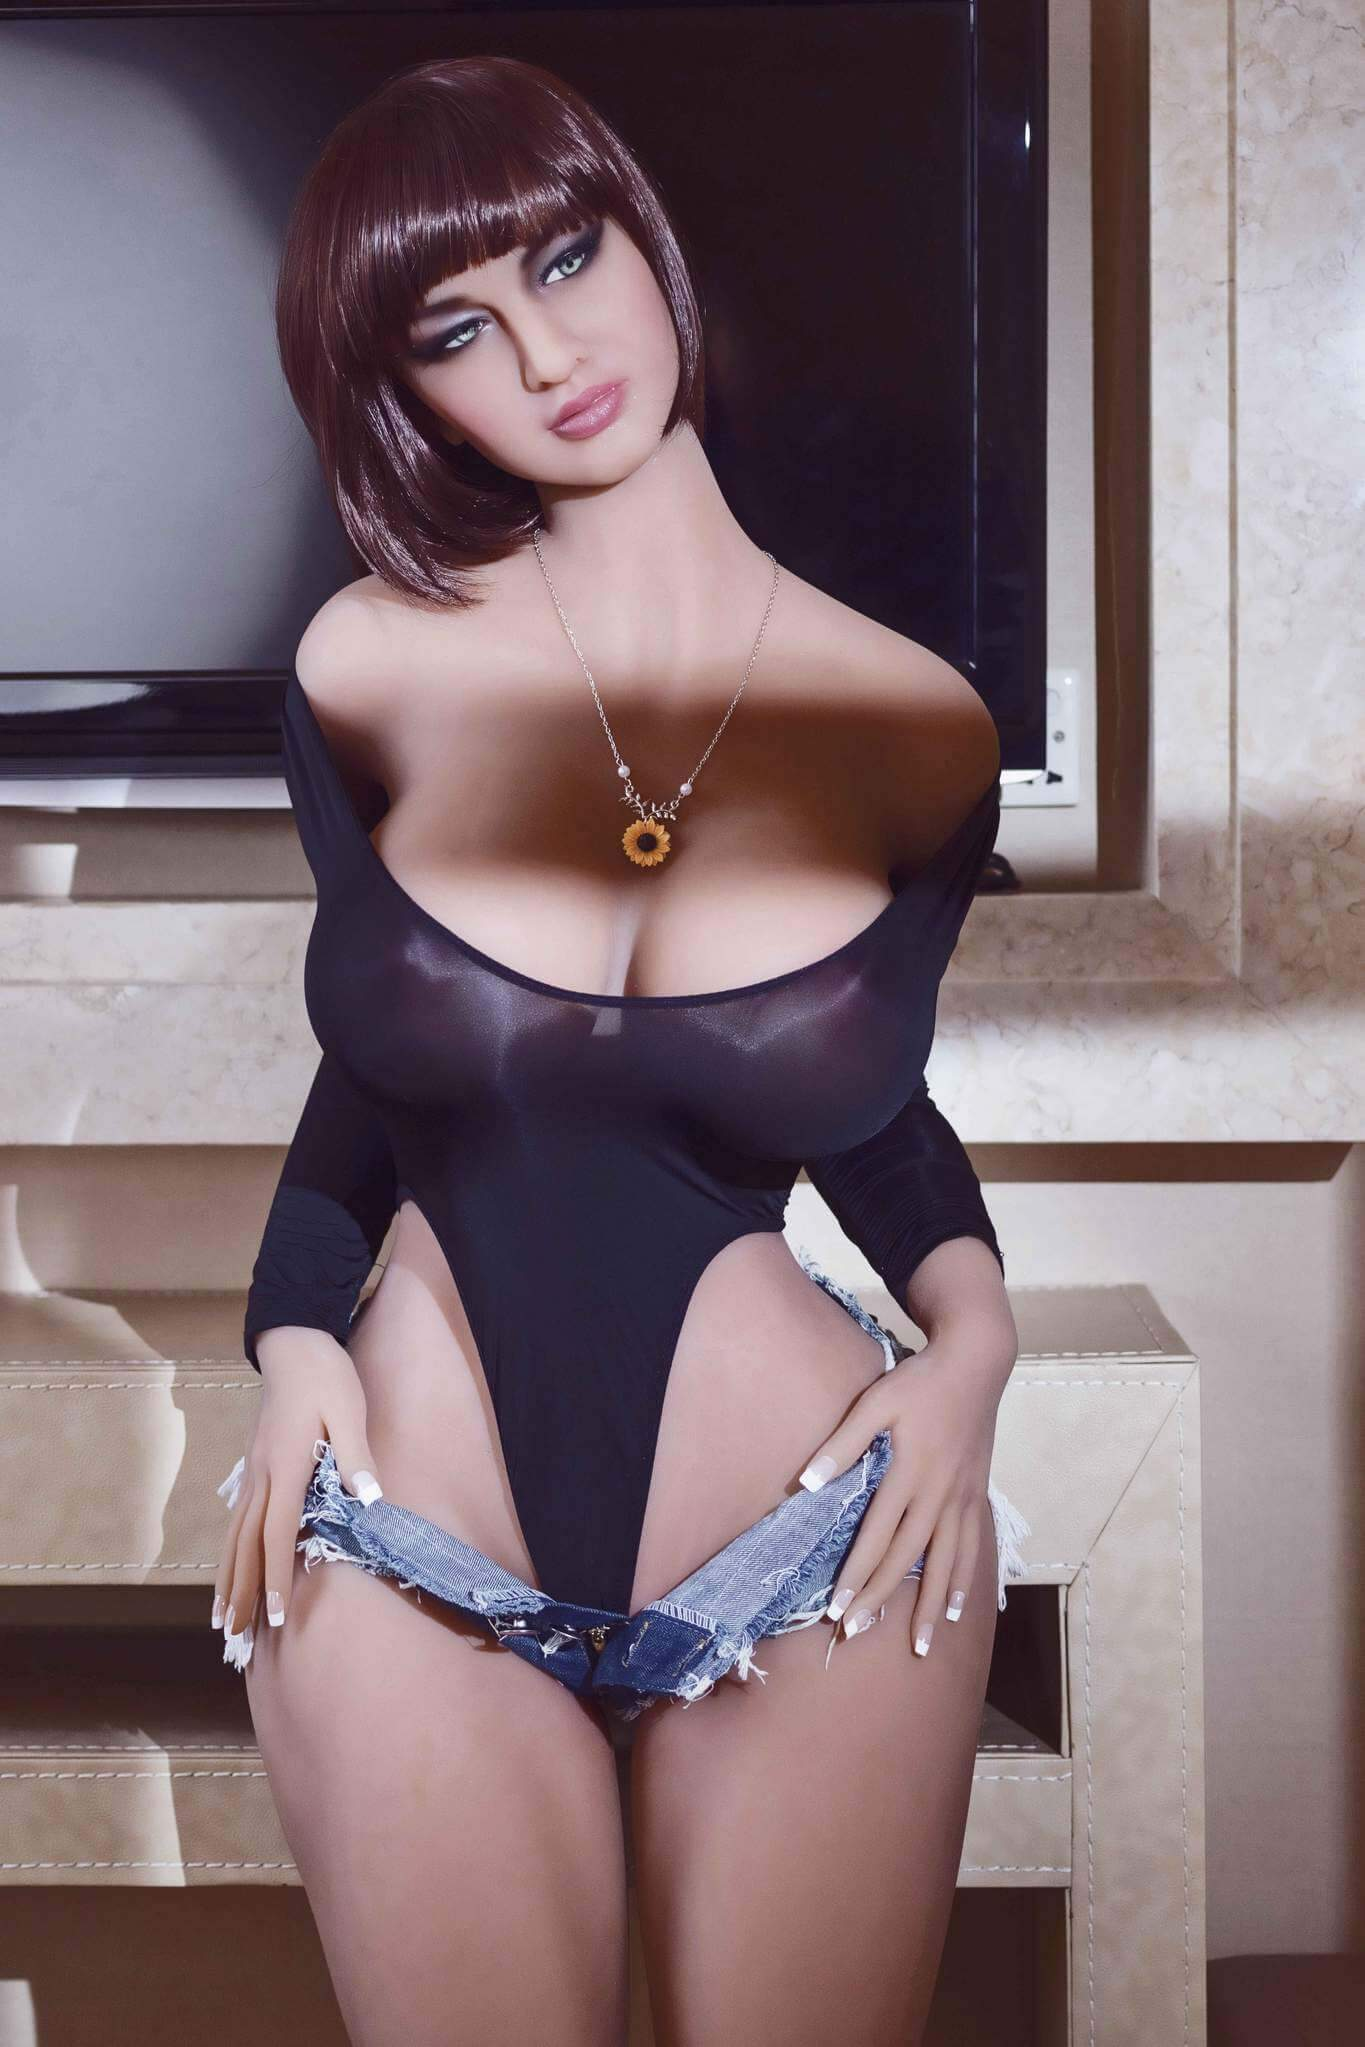 162m 5.31ft Adult Sex Doll With 3 Entries Huge Breast G Cup Lifelike Love Doll Sabina-sexdollslab.com